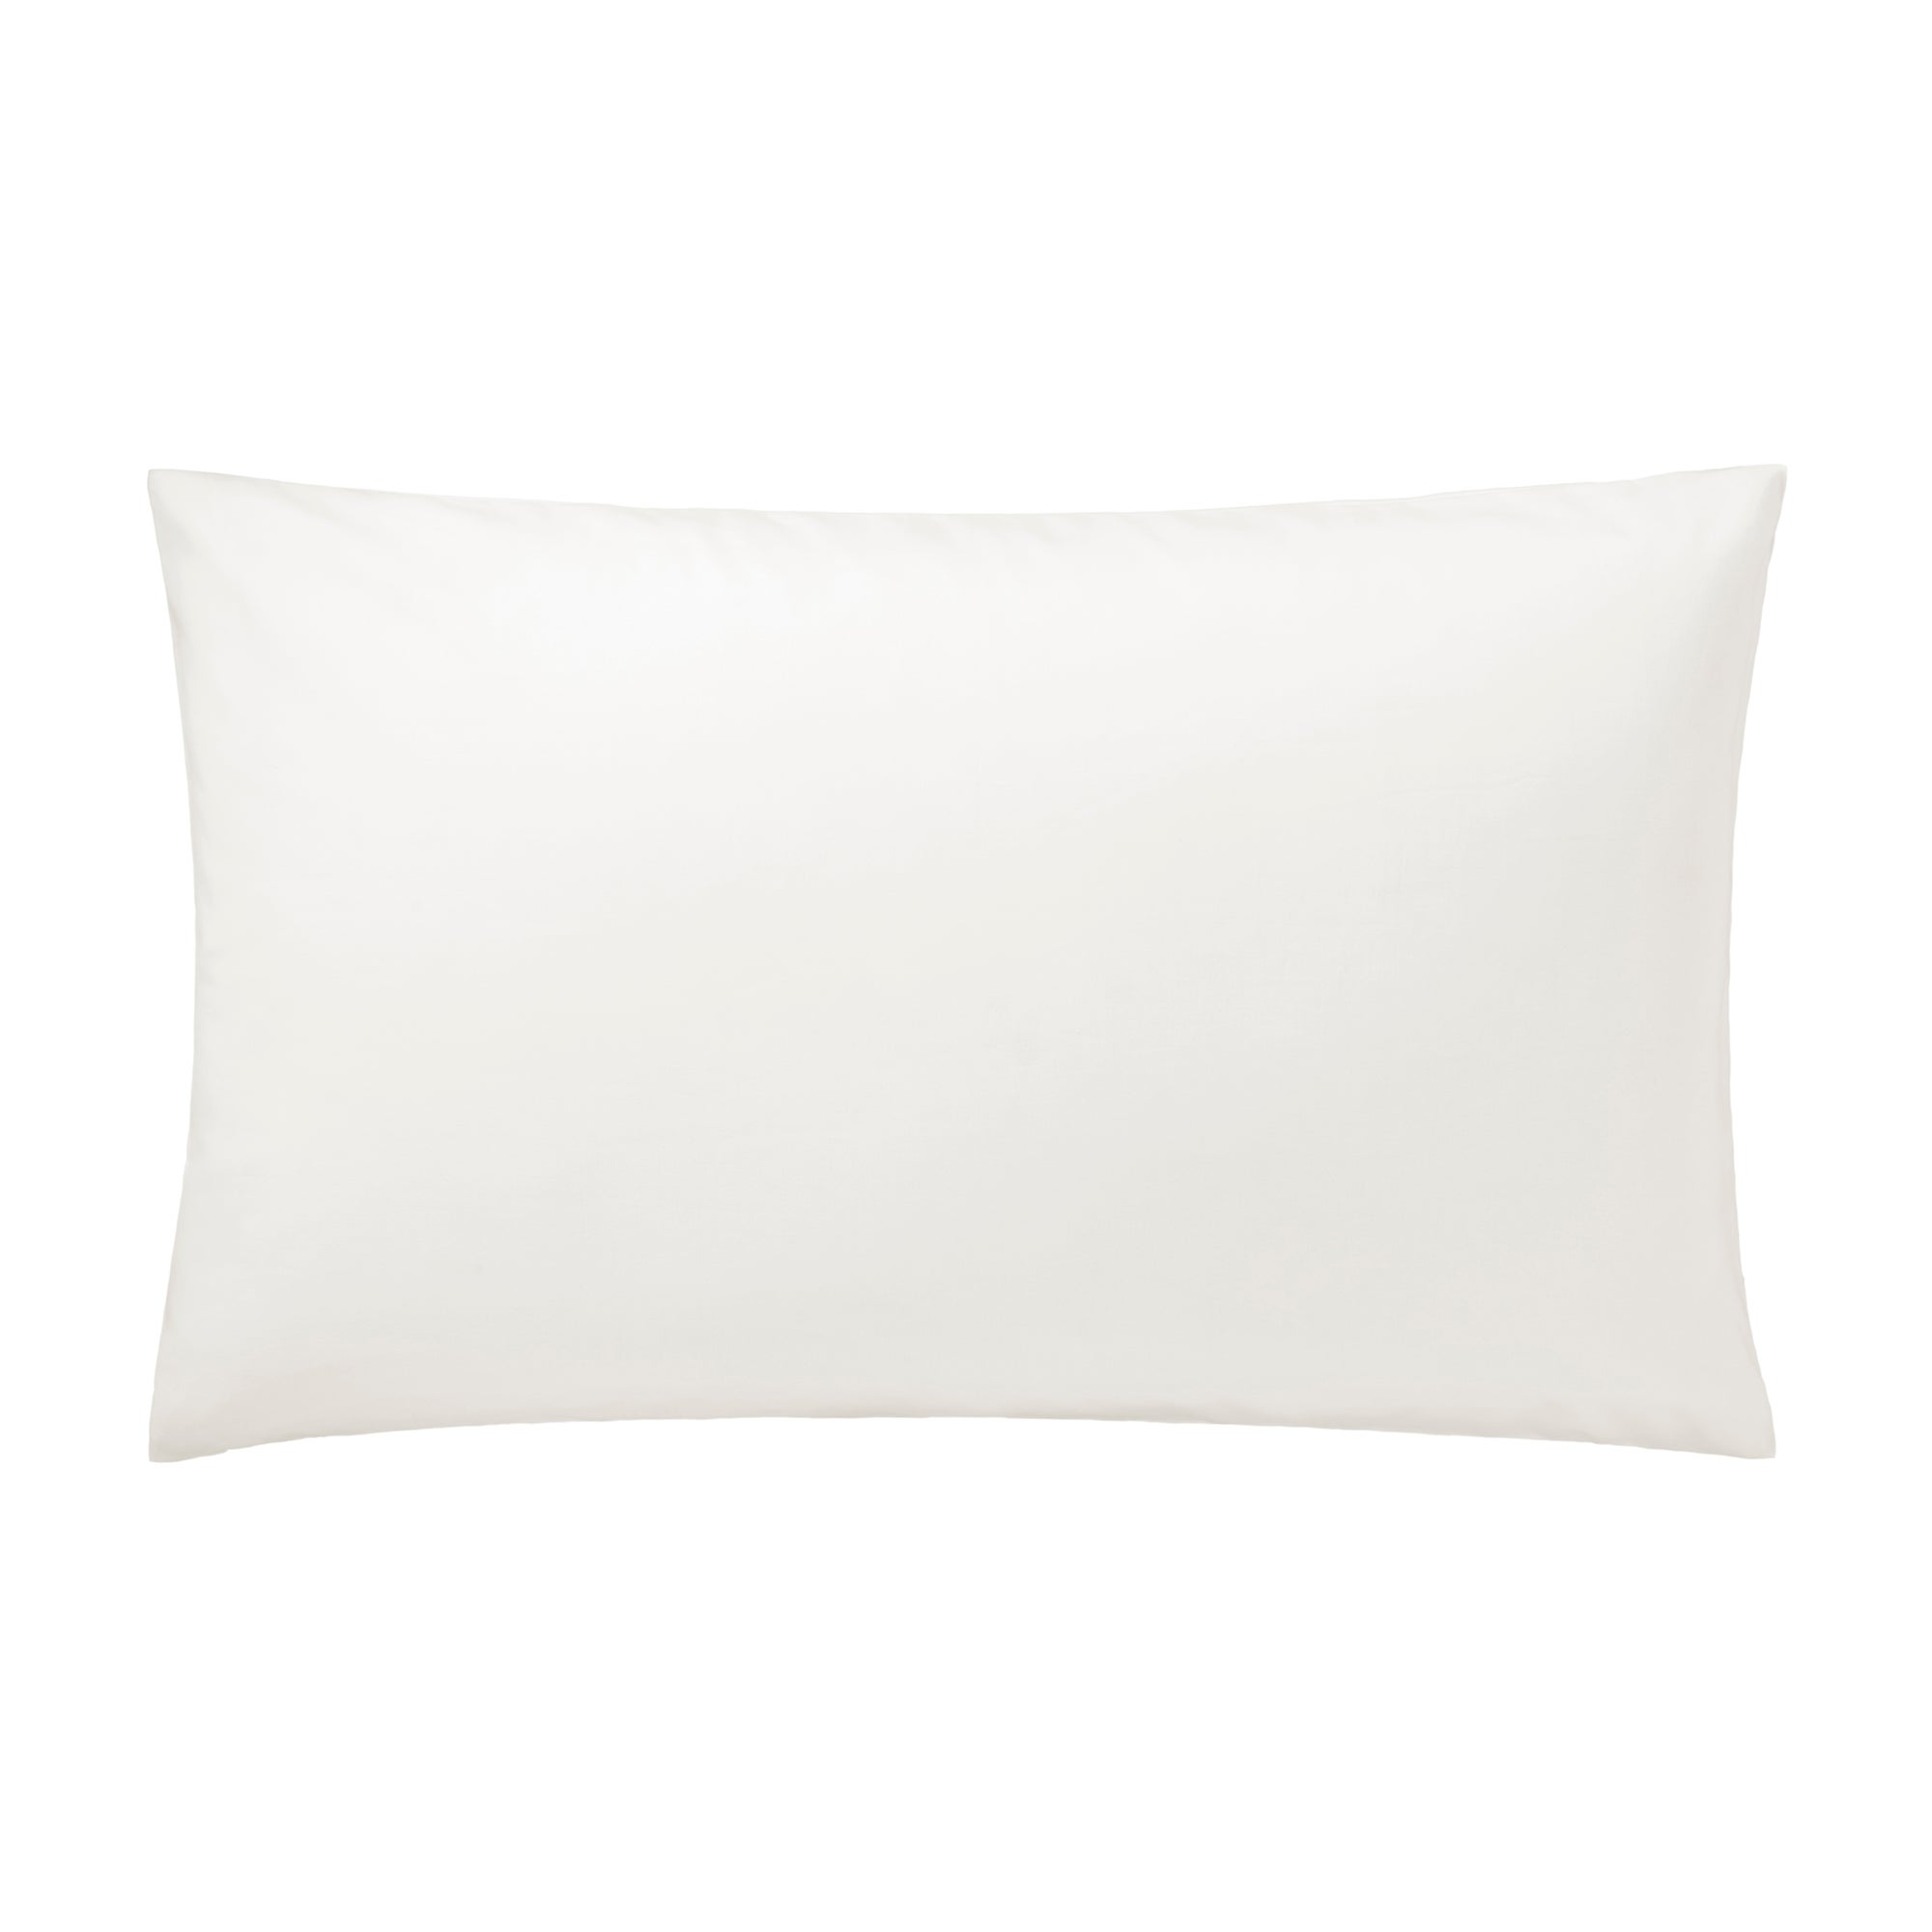 Cream Hotel Plain 300 Thread Count Collection Housewife Pillowcase